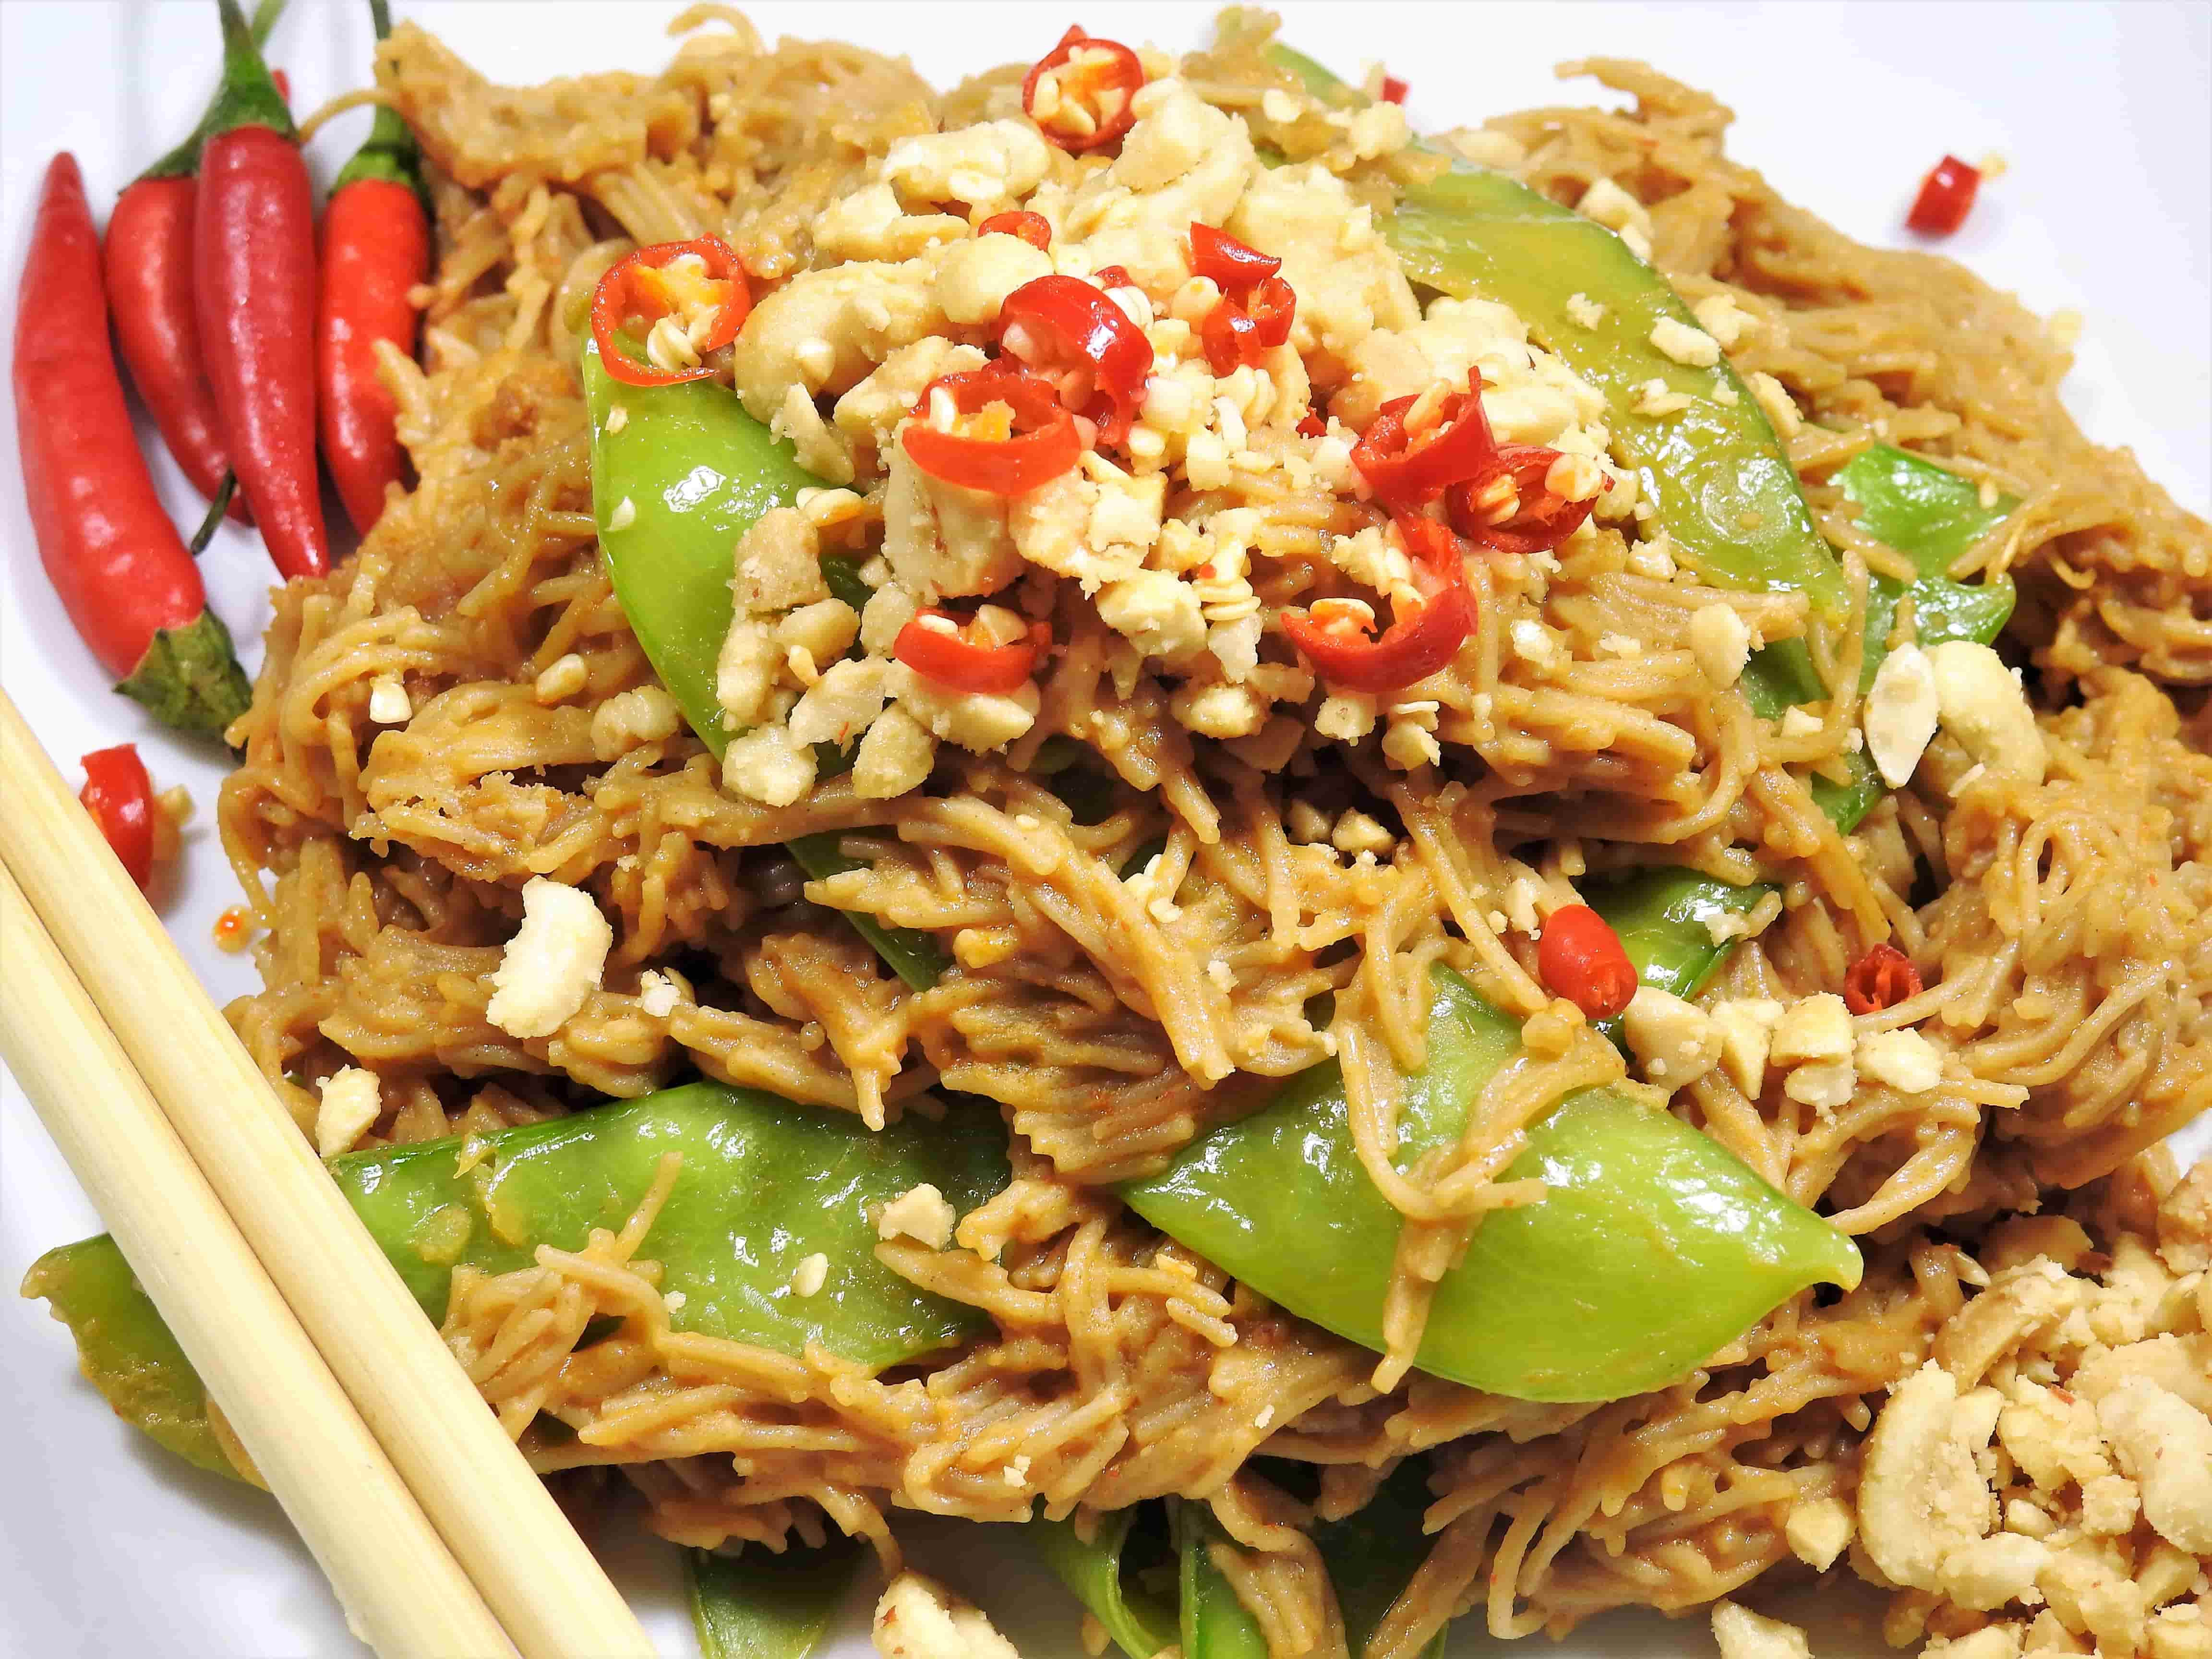 Healthy Thai Food Recipes  4 Ingre nt Peanut Brown Rice Vermicelli Noodles